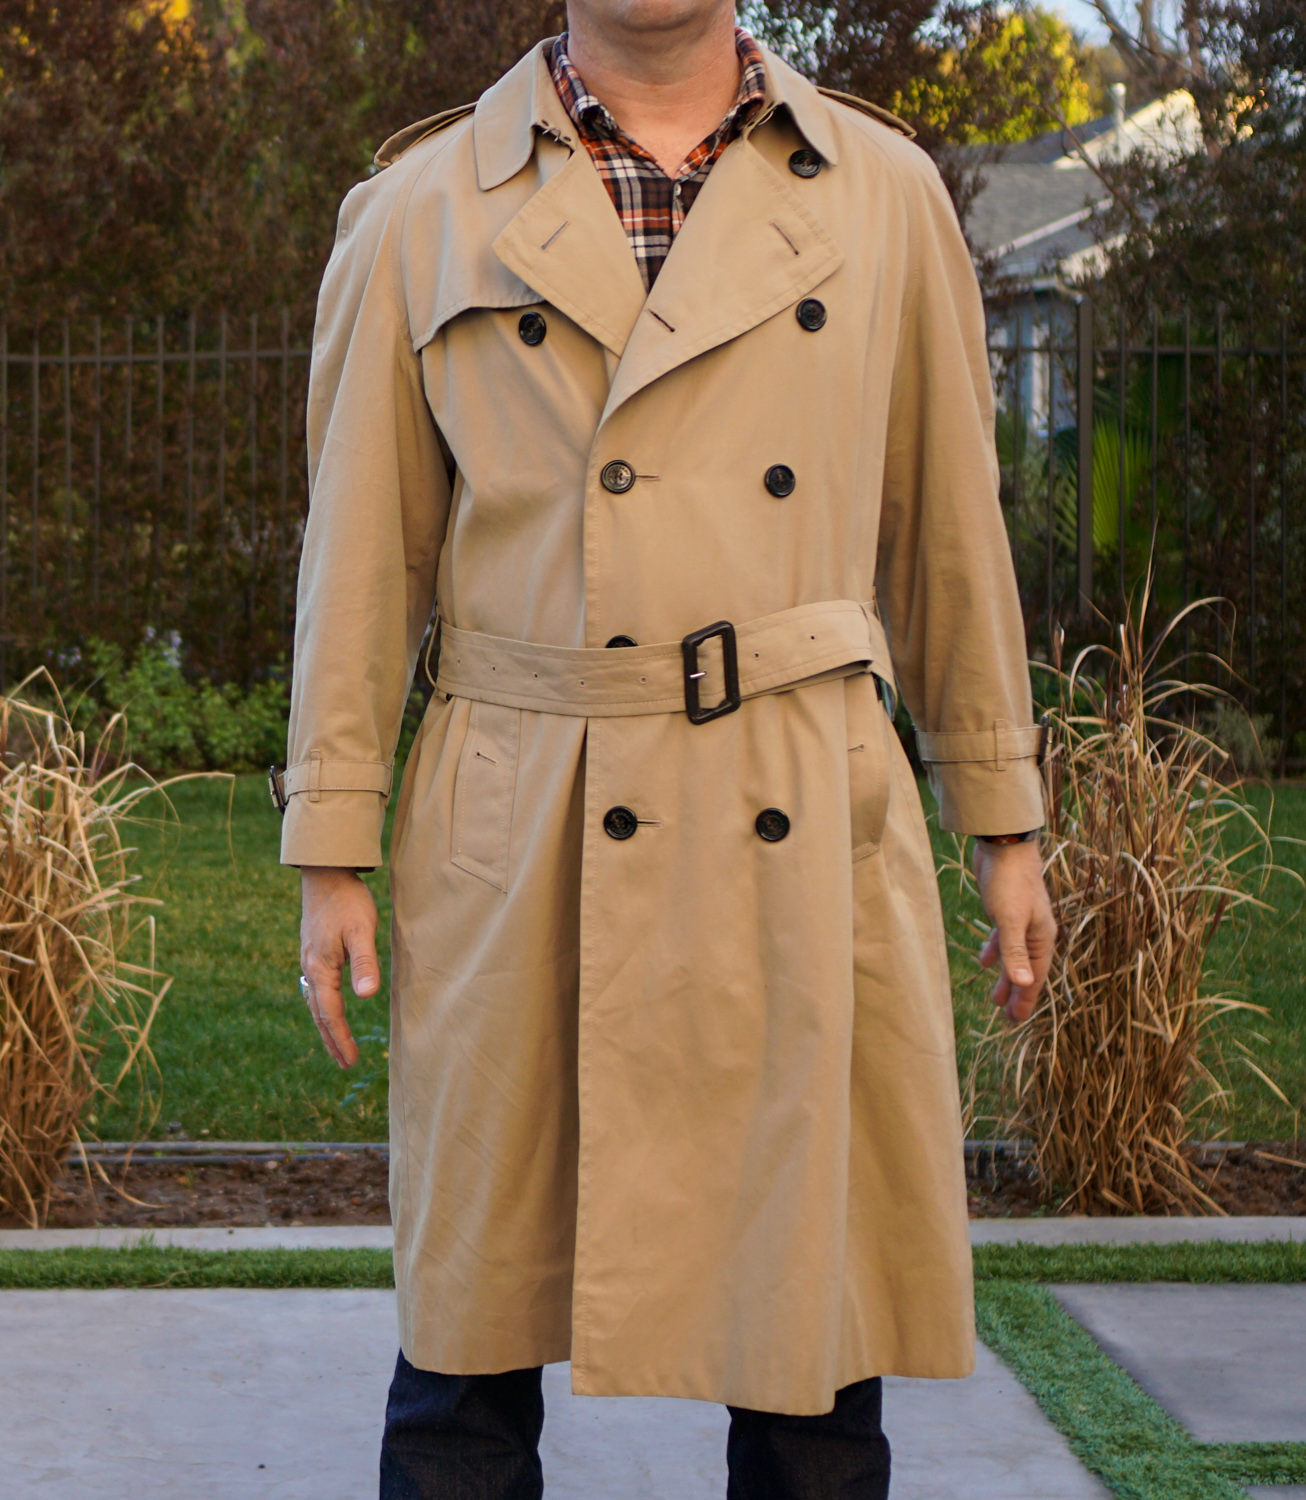 Burberry Trench Coat Long - Size UK 54 or US 44 | The Fedora Lounge